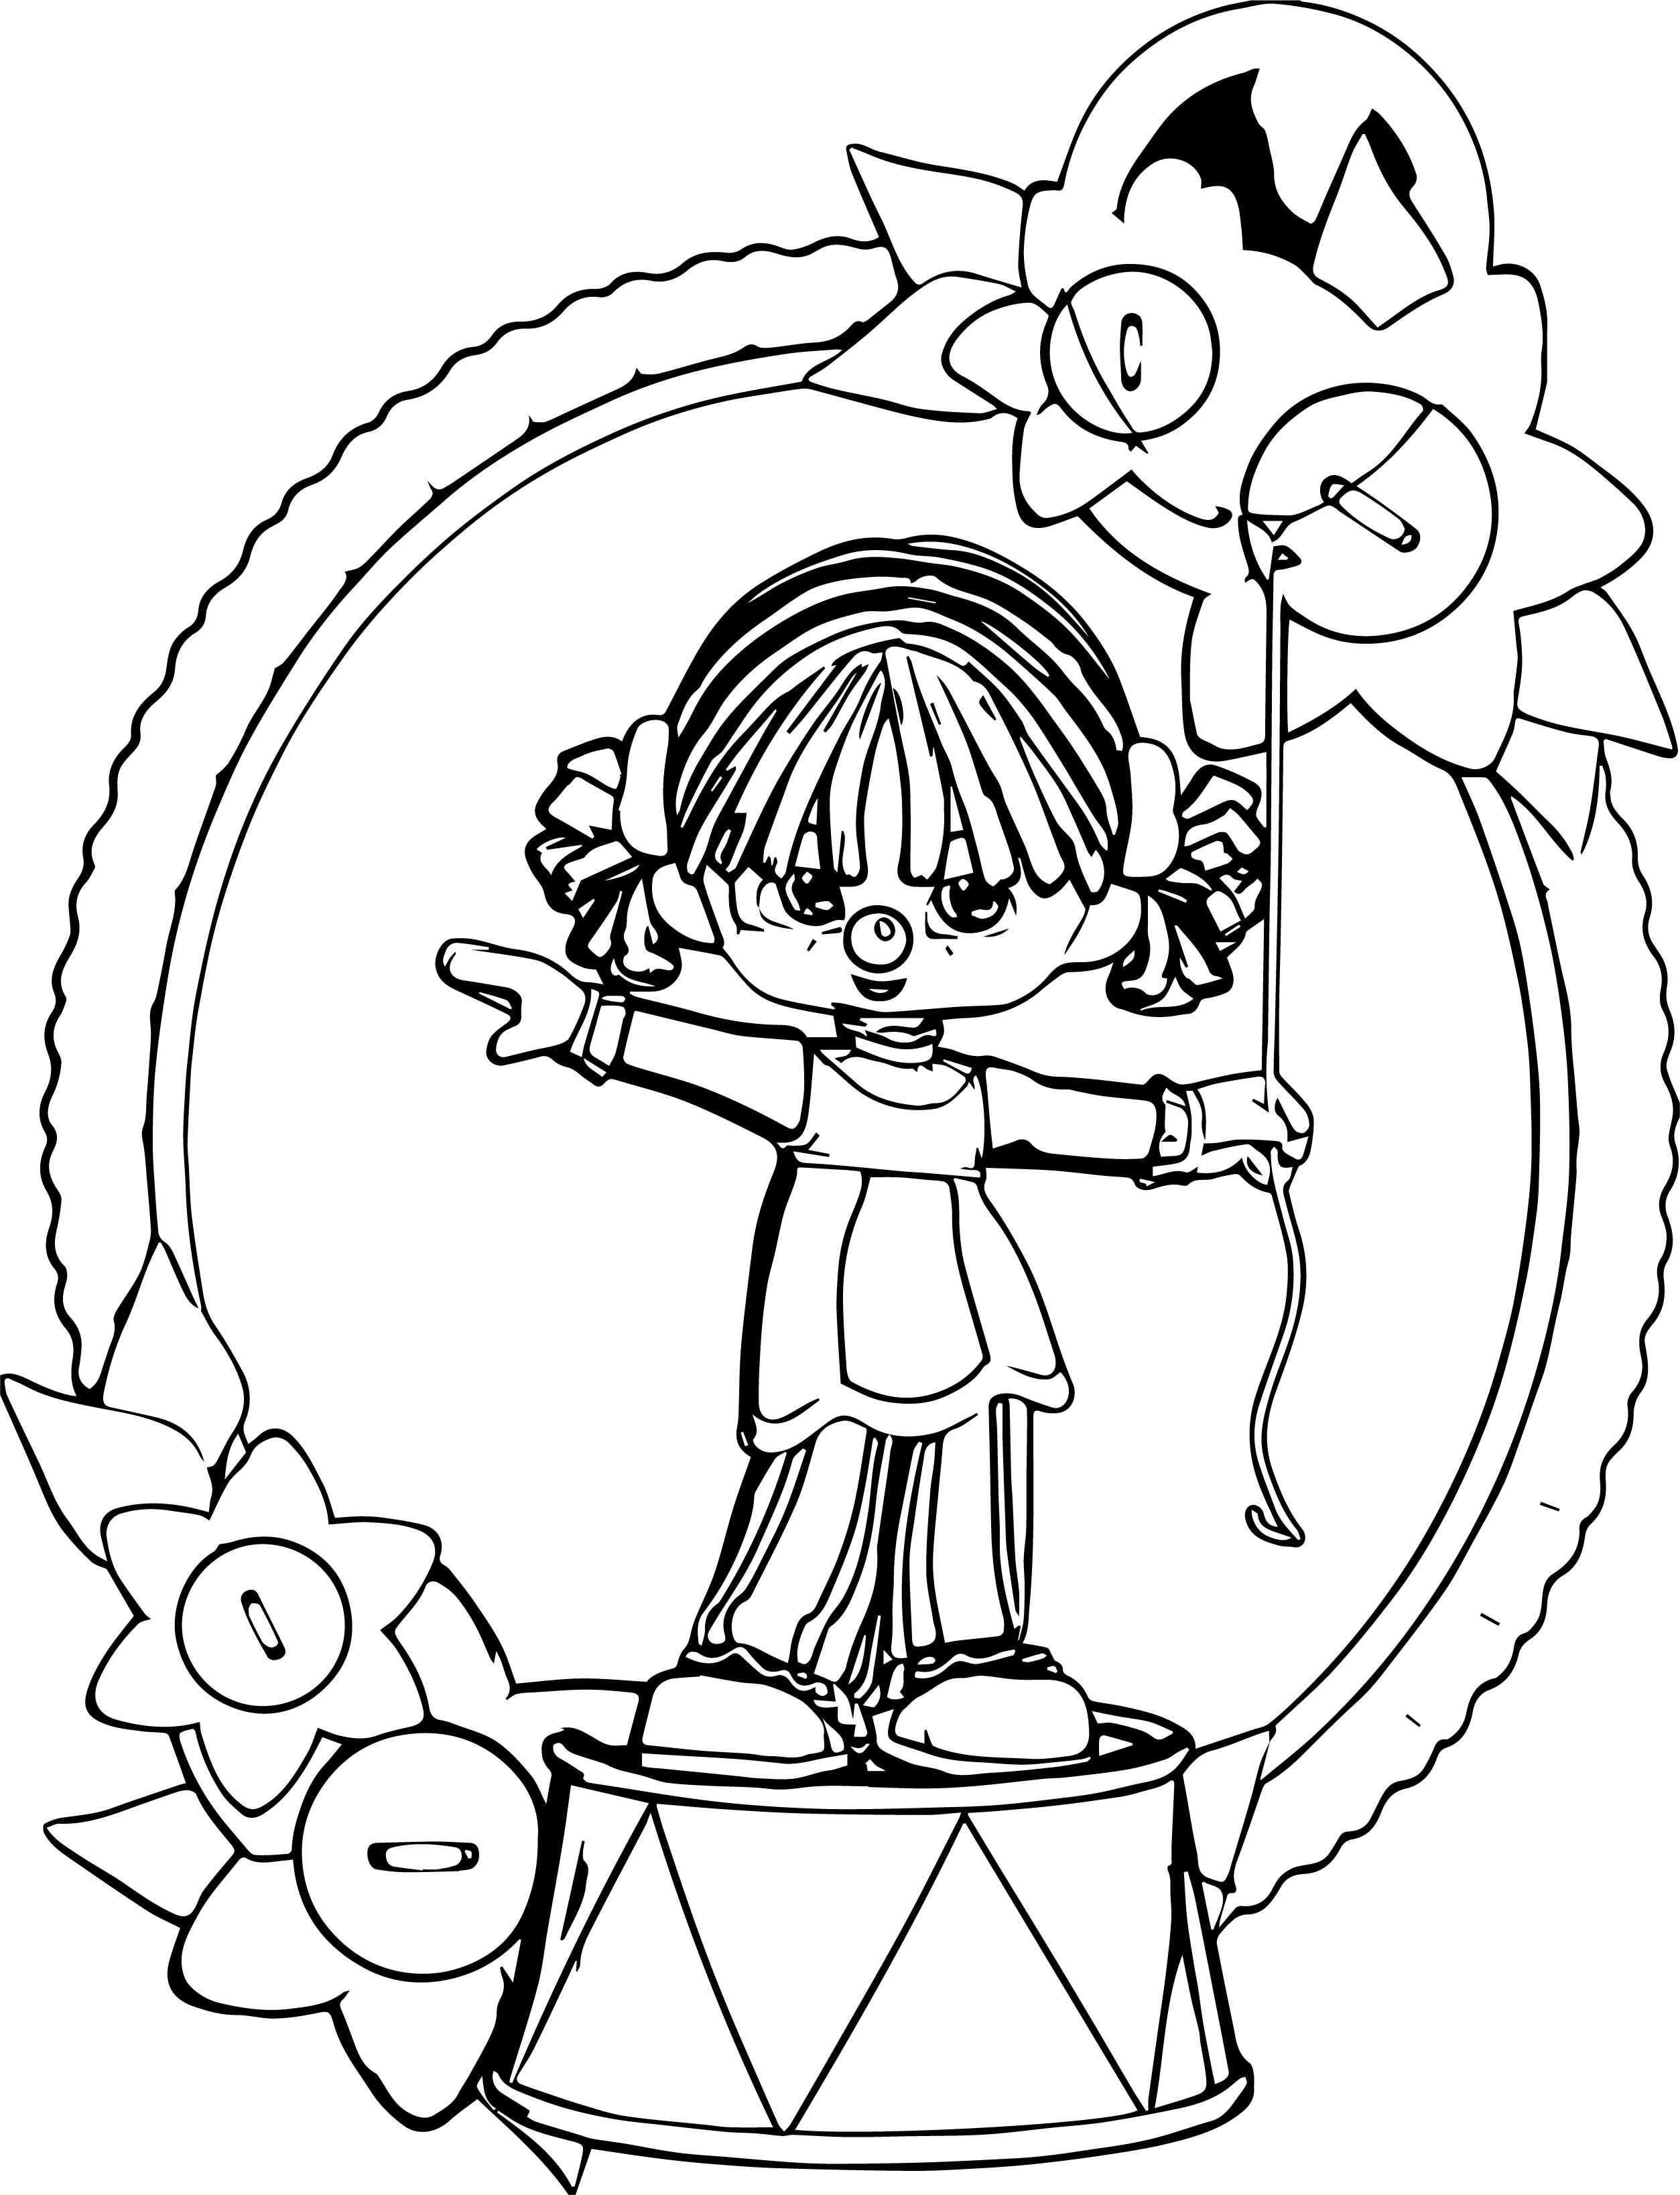 Place Birthday Clown Coloring Page